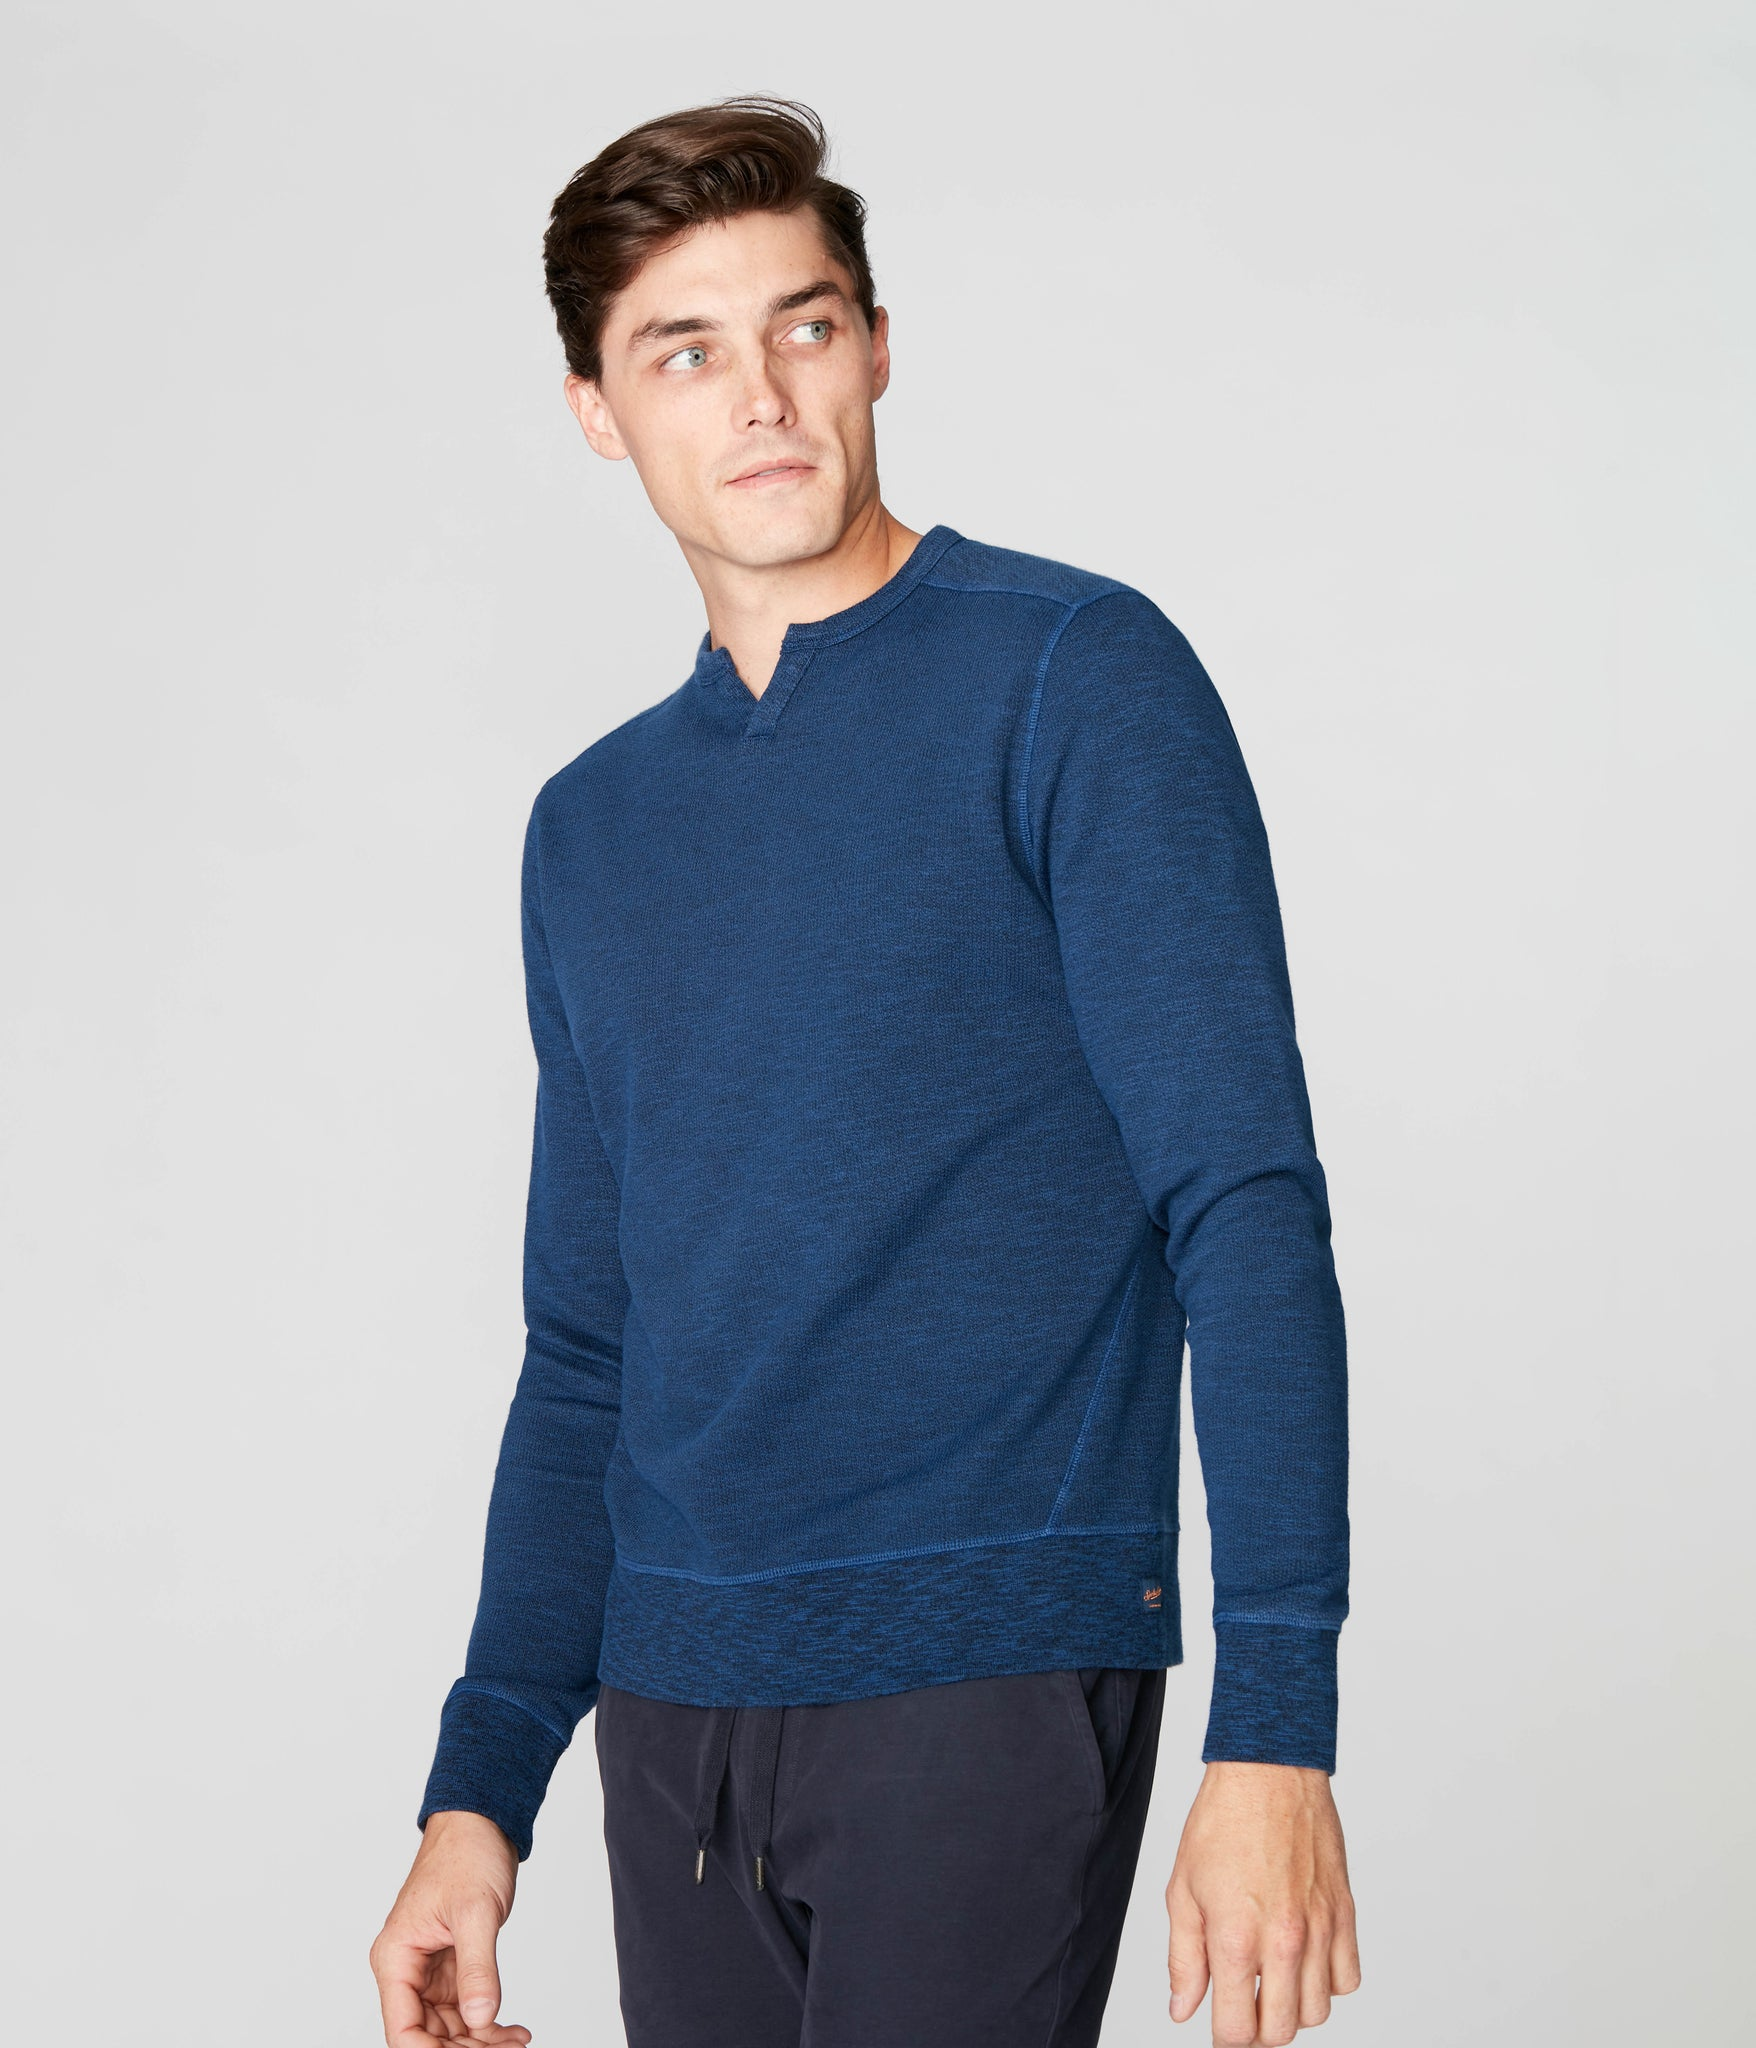 Victory V-Notch Sweatshirt in Black Marl - Blue